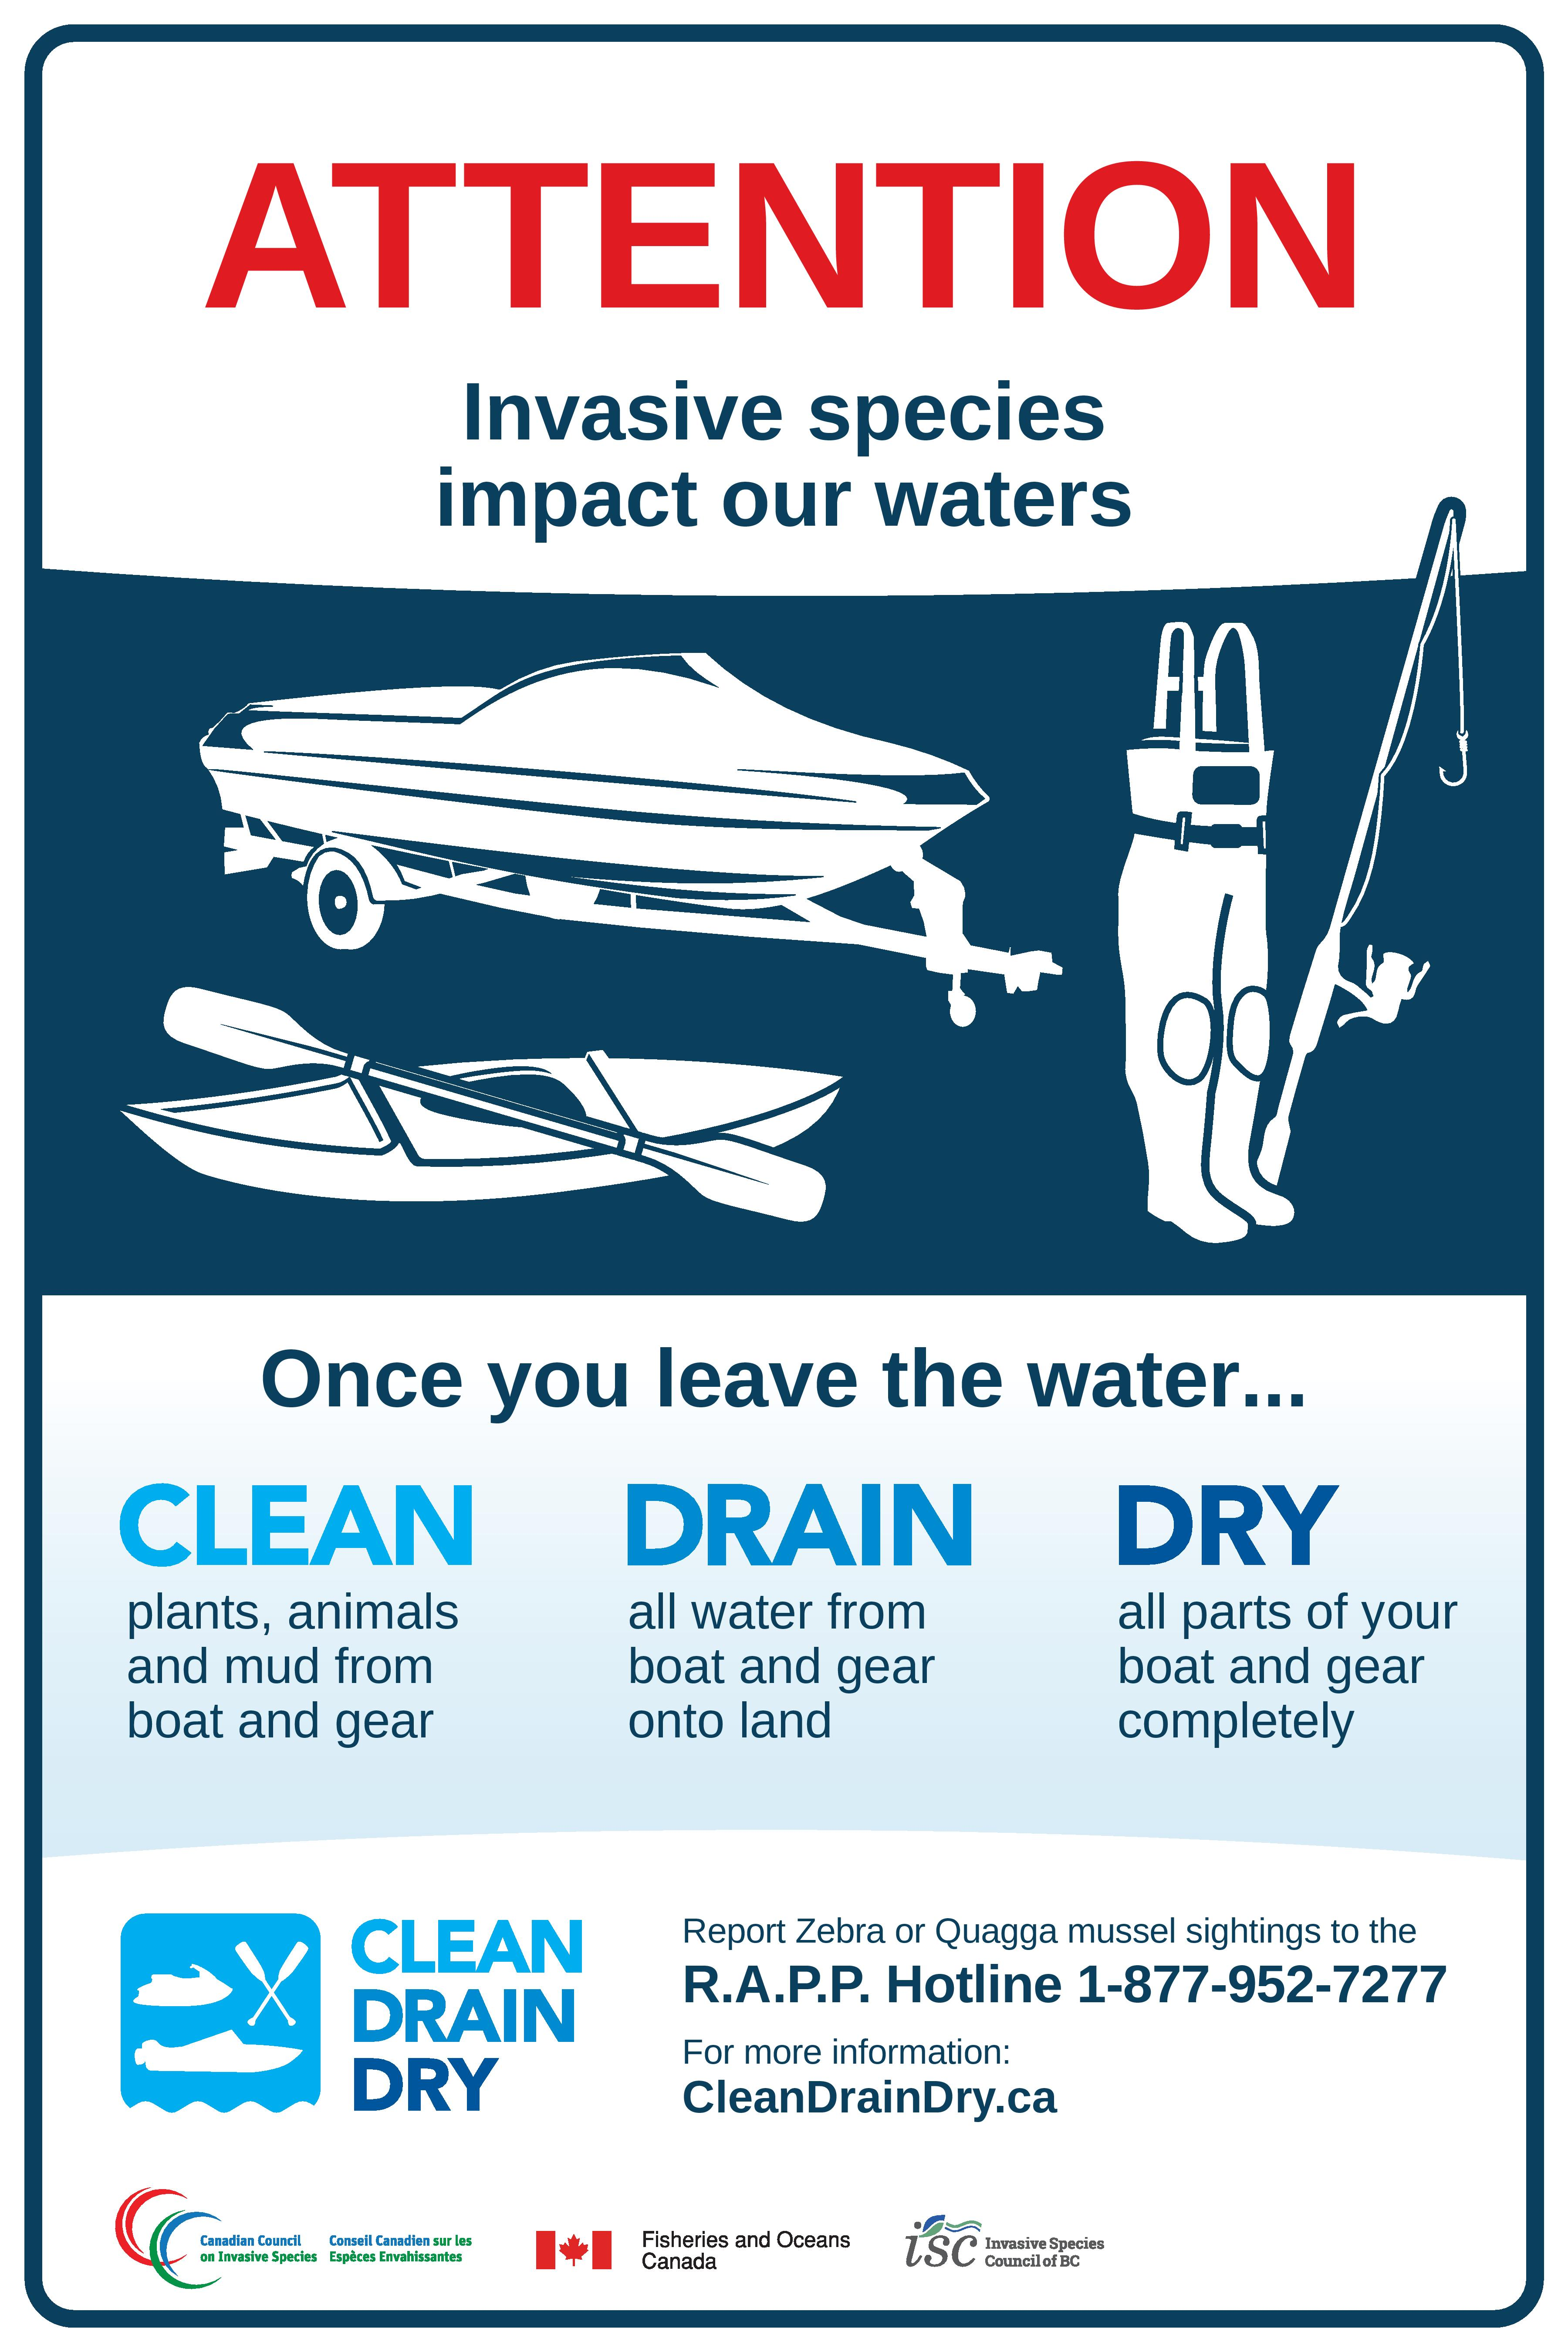 Clean Drain Dry - Canadian Council on Invasive Species